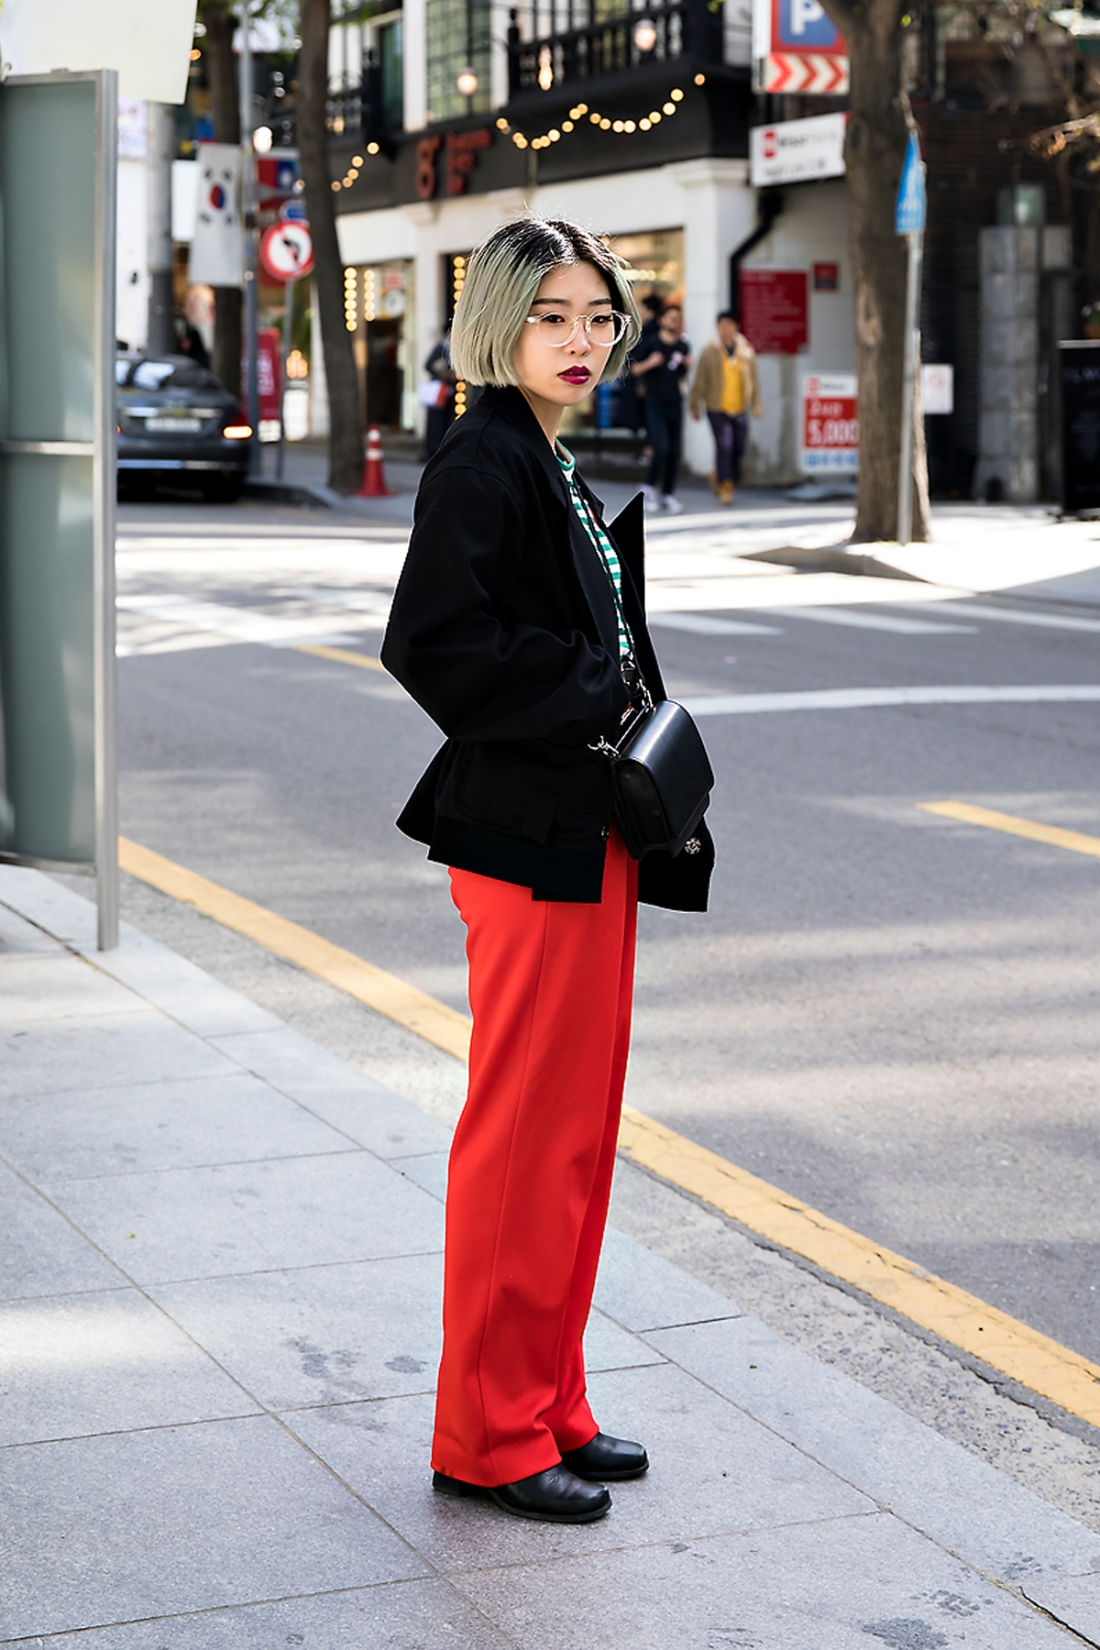 Uemoto Rika, Street Fashion 2017 in Seoul.jpg